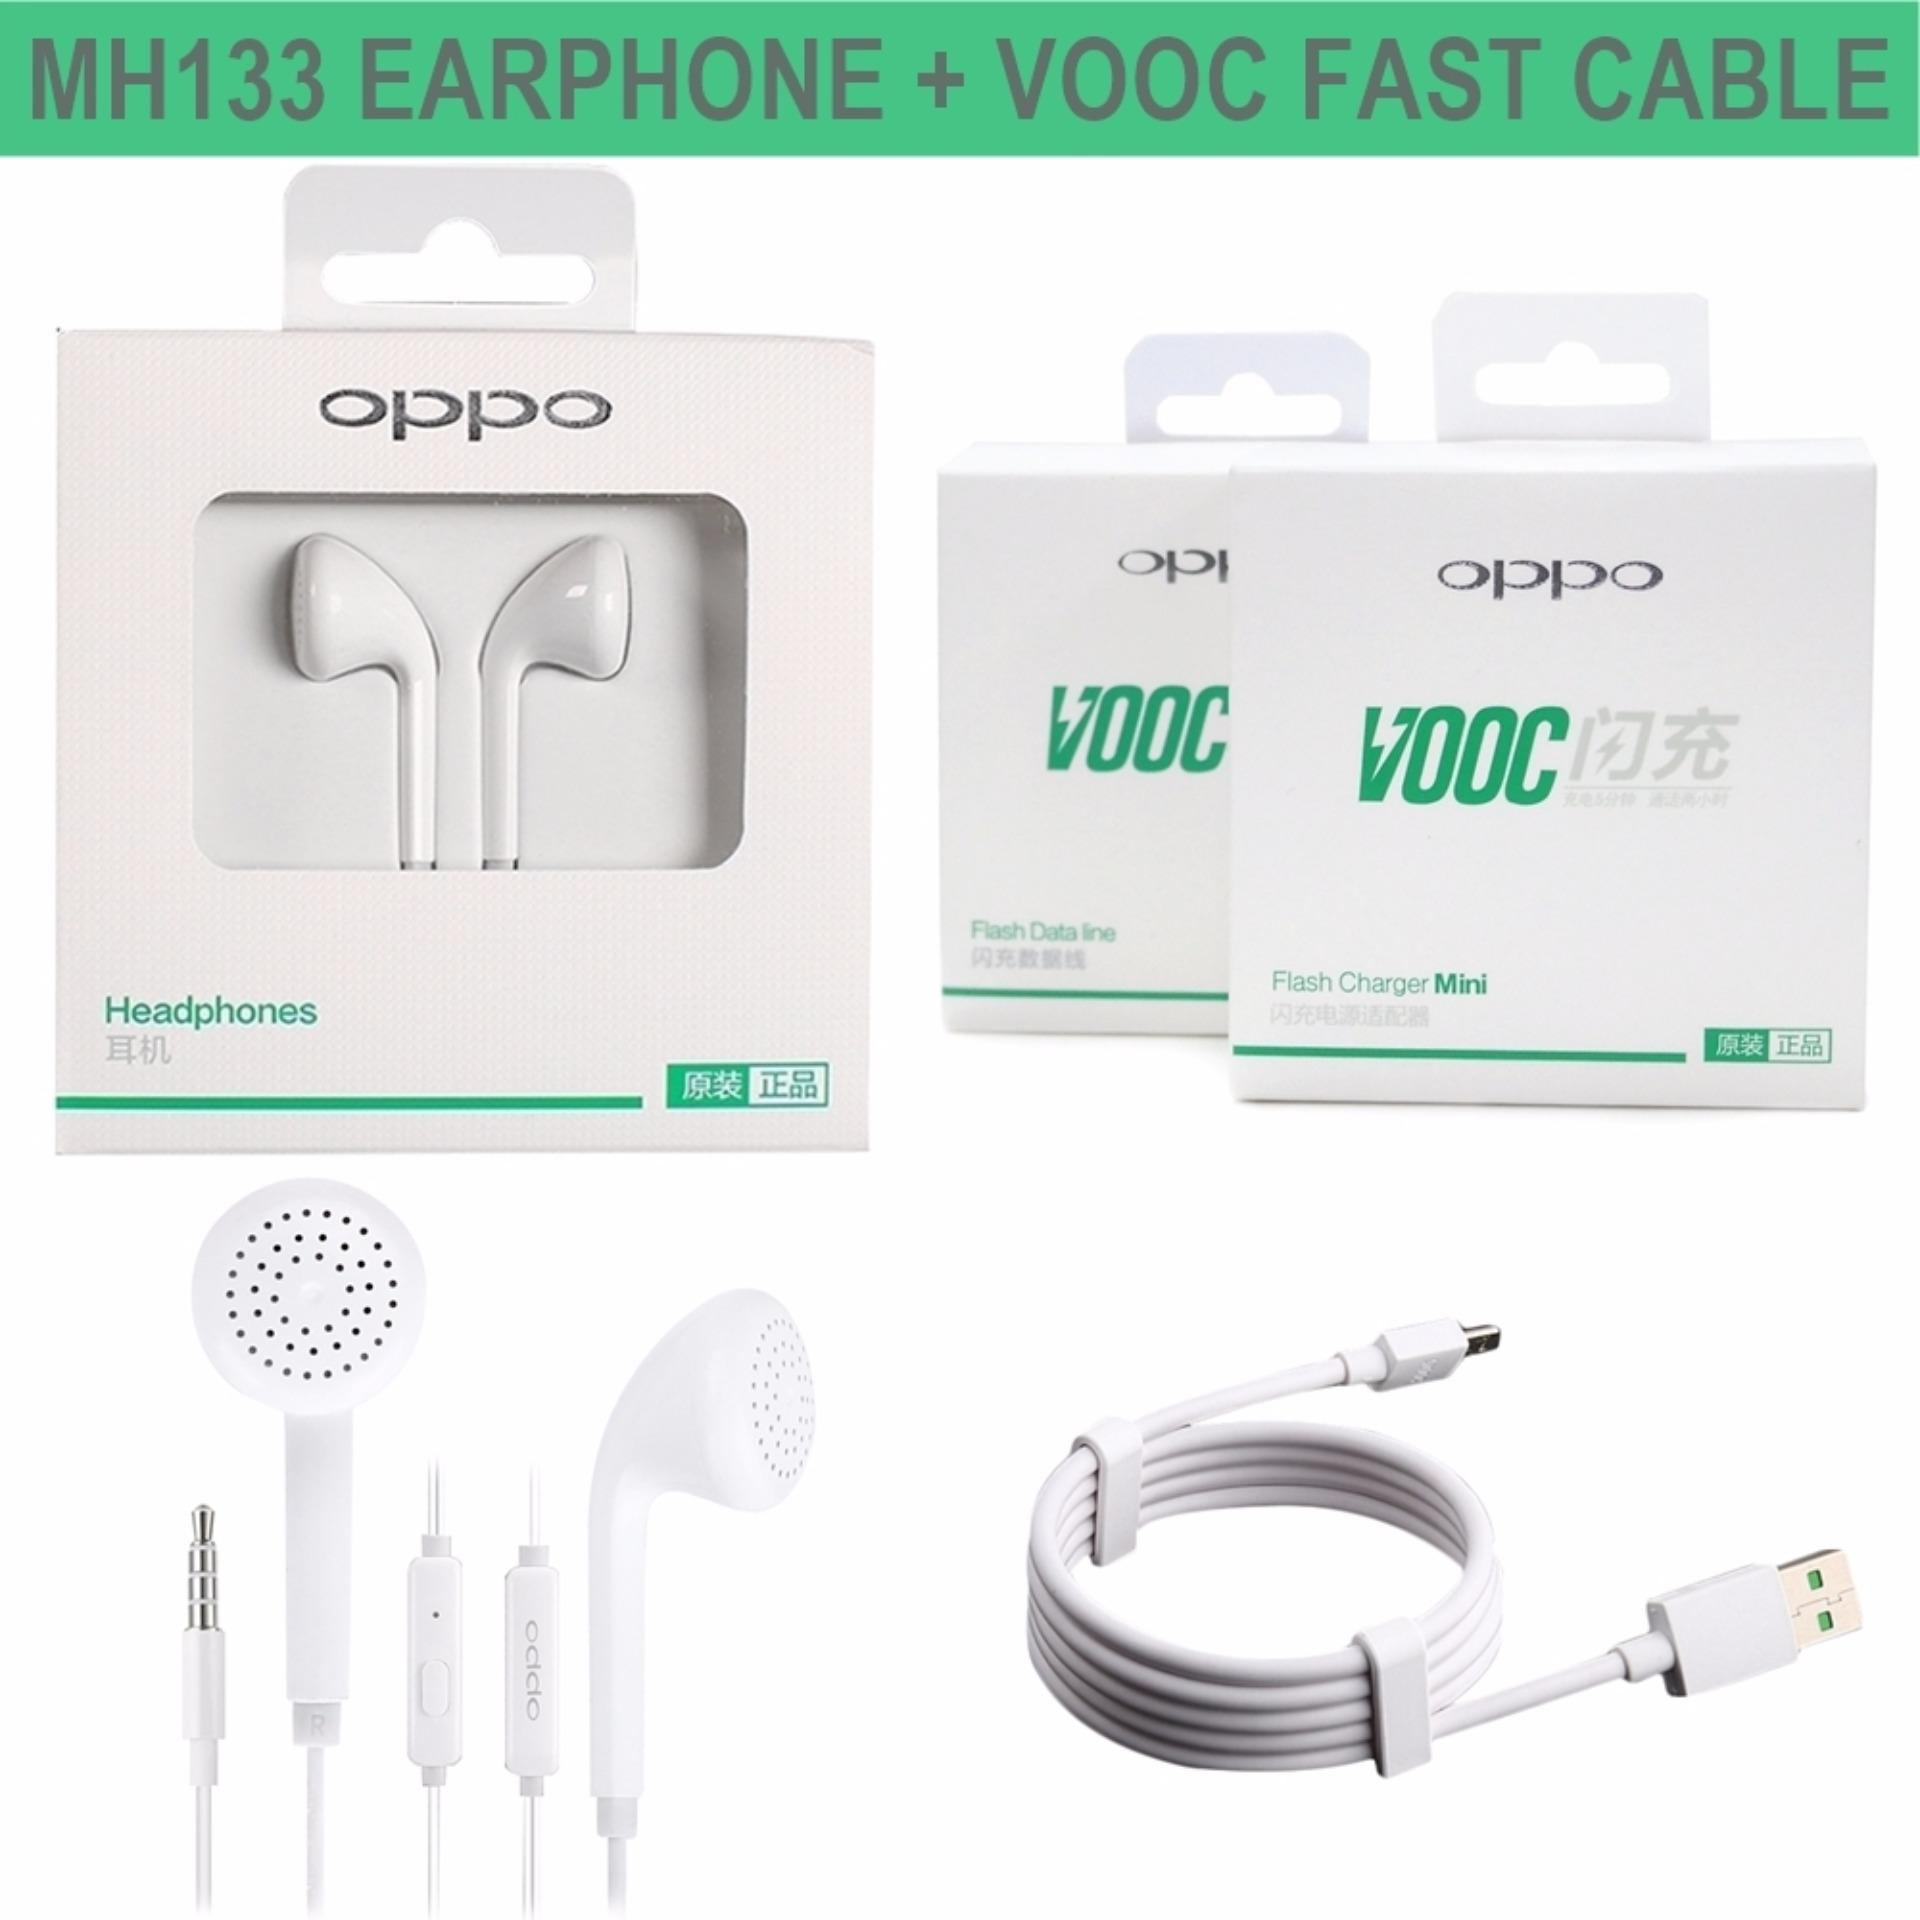 Review Oppo Headset Handsfree Earphone Original Mh133 White Free Kabel Vooc Fash Charging Di Dki Jakarta